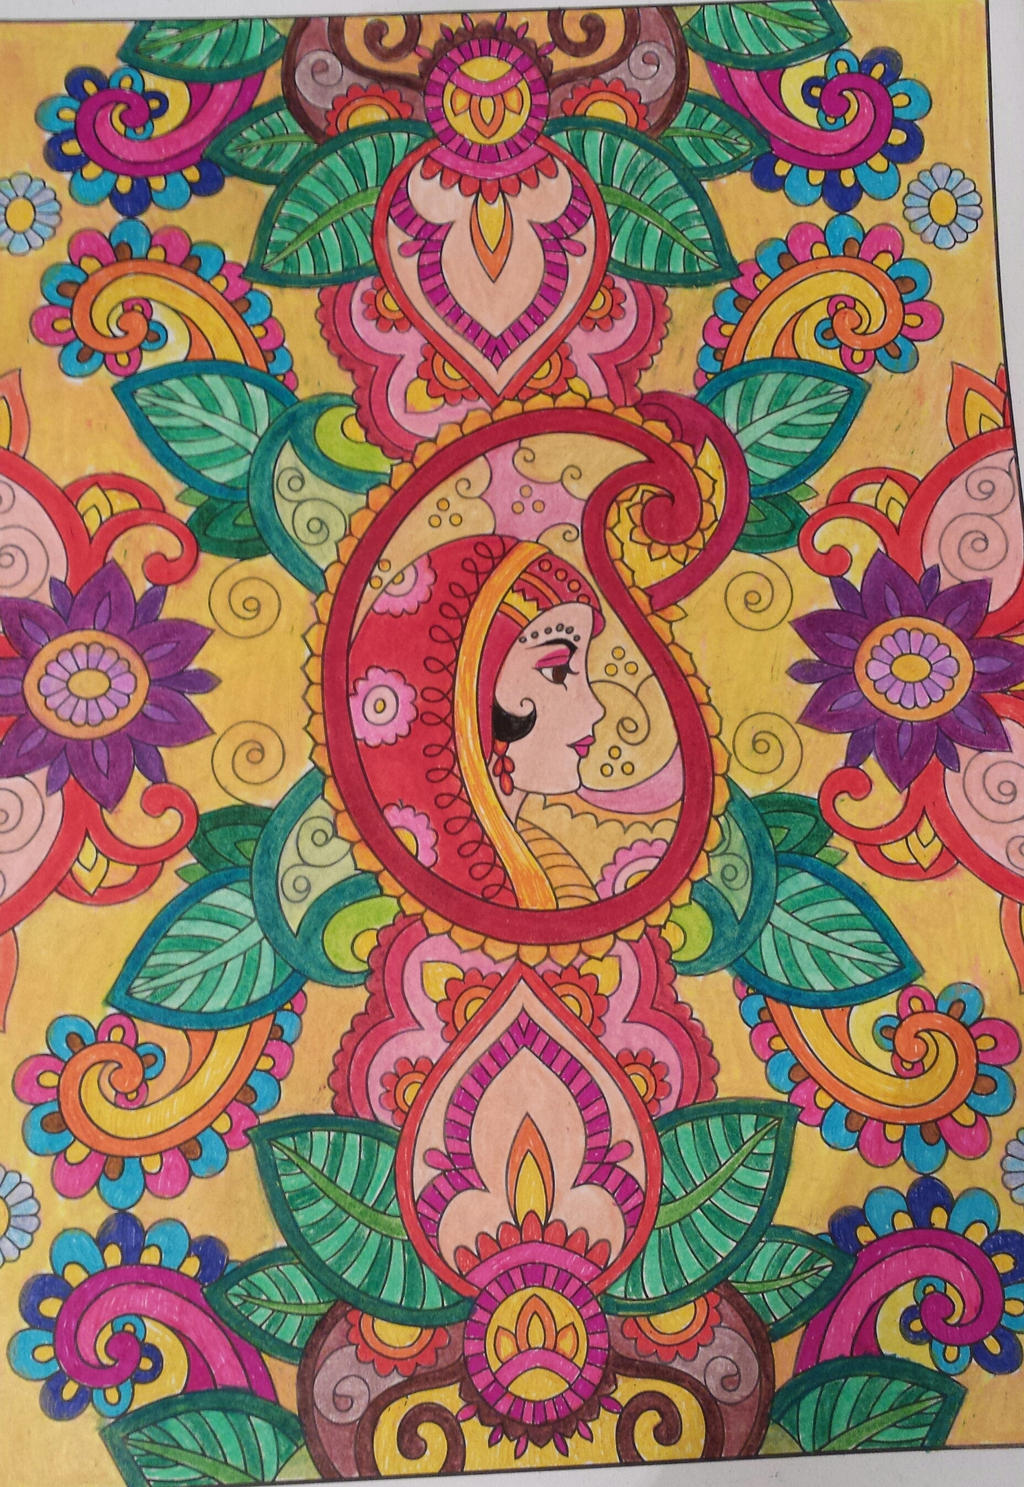 Mehndi Designs Coloring Book : Creative haven mehndi designs coloring book page by